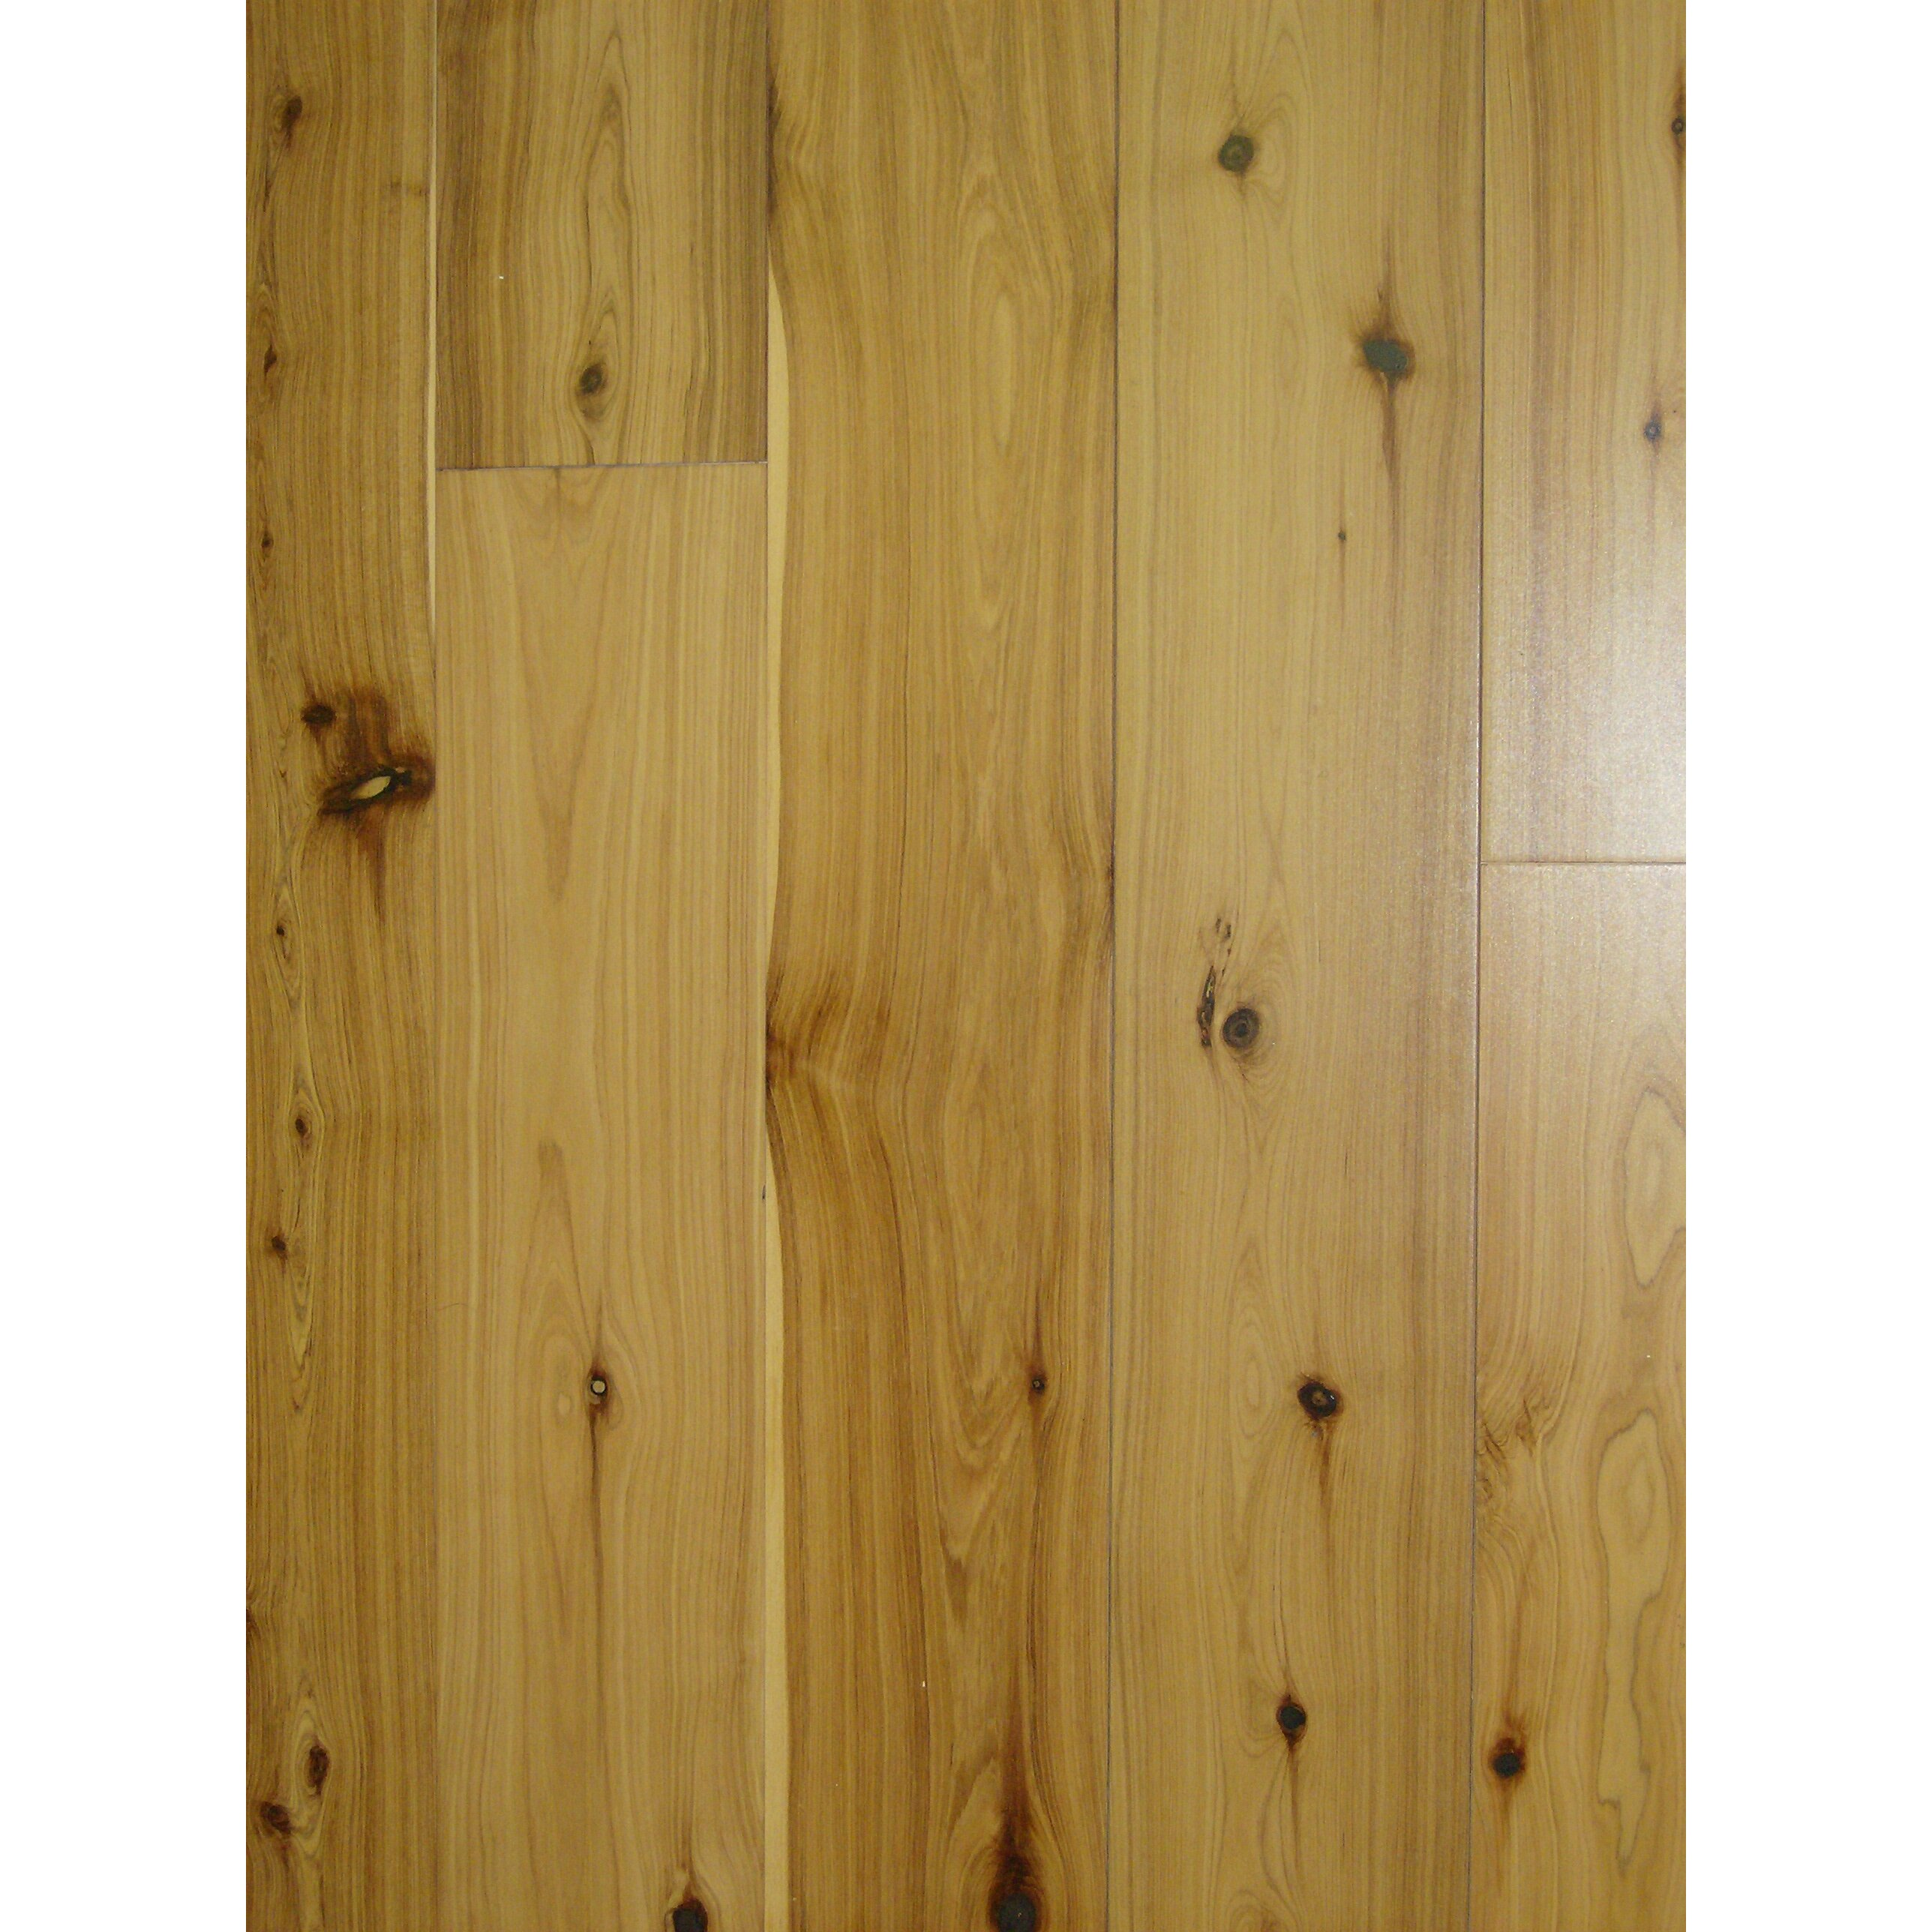 Eddie bauer floors town and country 5 1 2 engineered australian cypress hardwood flooring in - Australian cypress hardwood ...